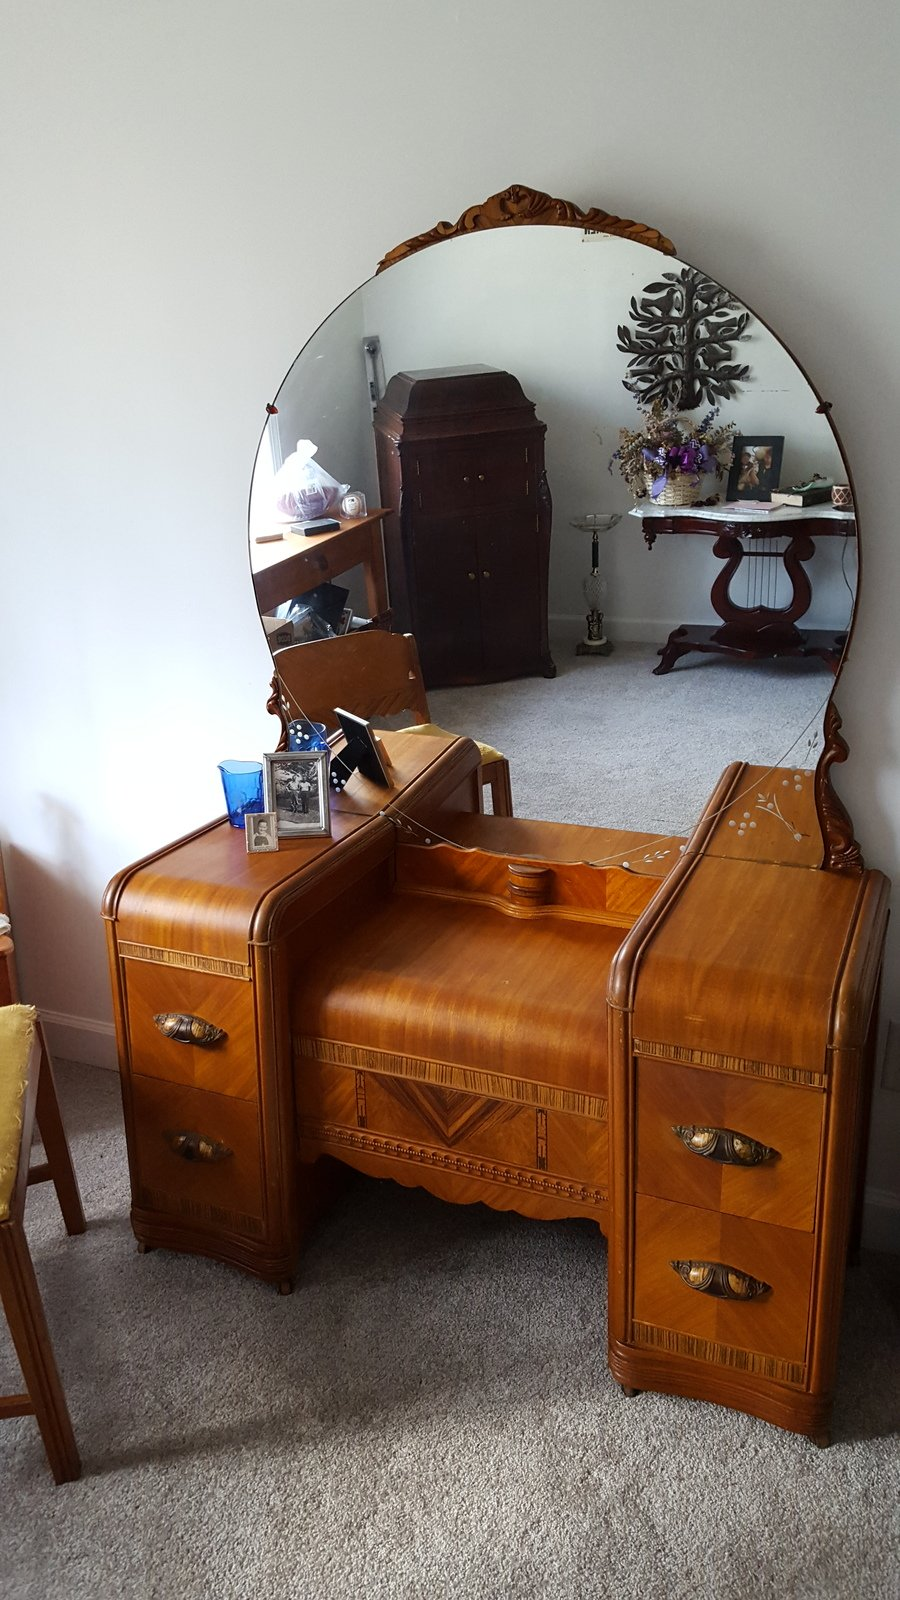 Antique bedroom furniture value - Wondering The Age And Worth Of Waterfall Vanity